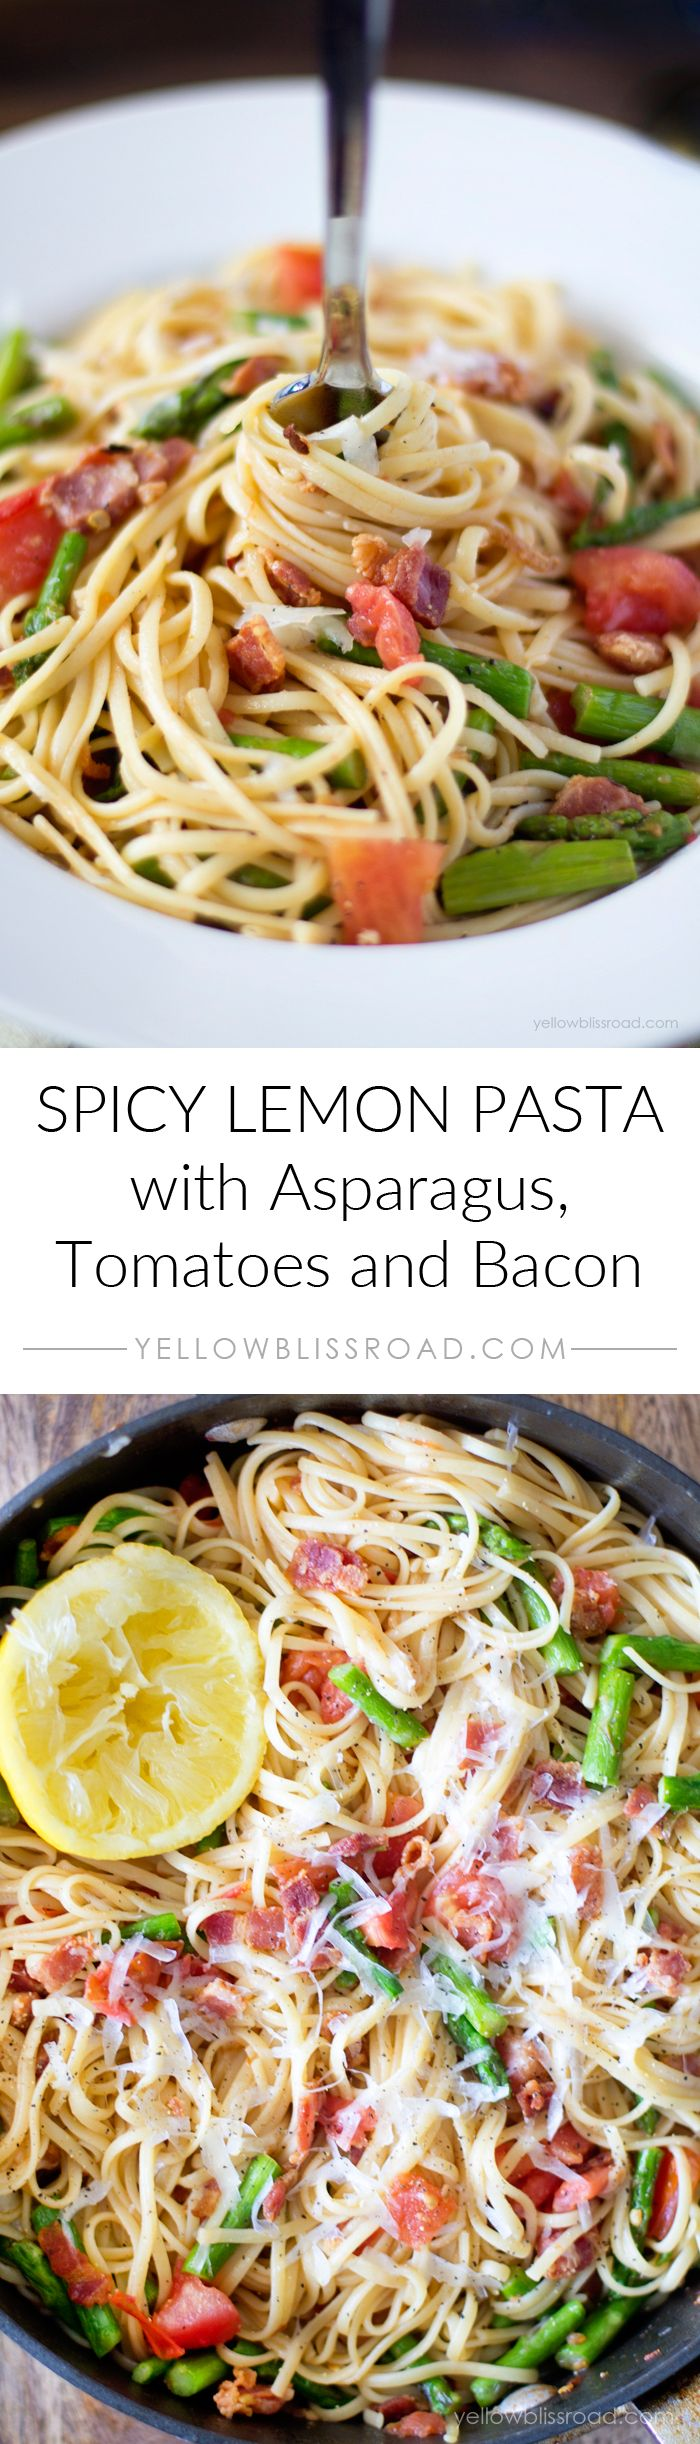 Spicy Lemon Pasta with Bacon, Asparagus and Tomatoes - An easy to whip up pasta dish that is light and full of flavor. #letscook